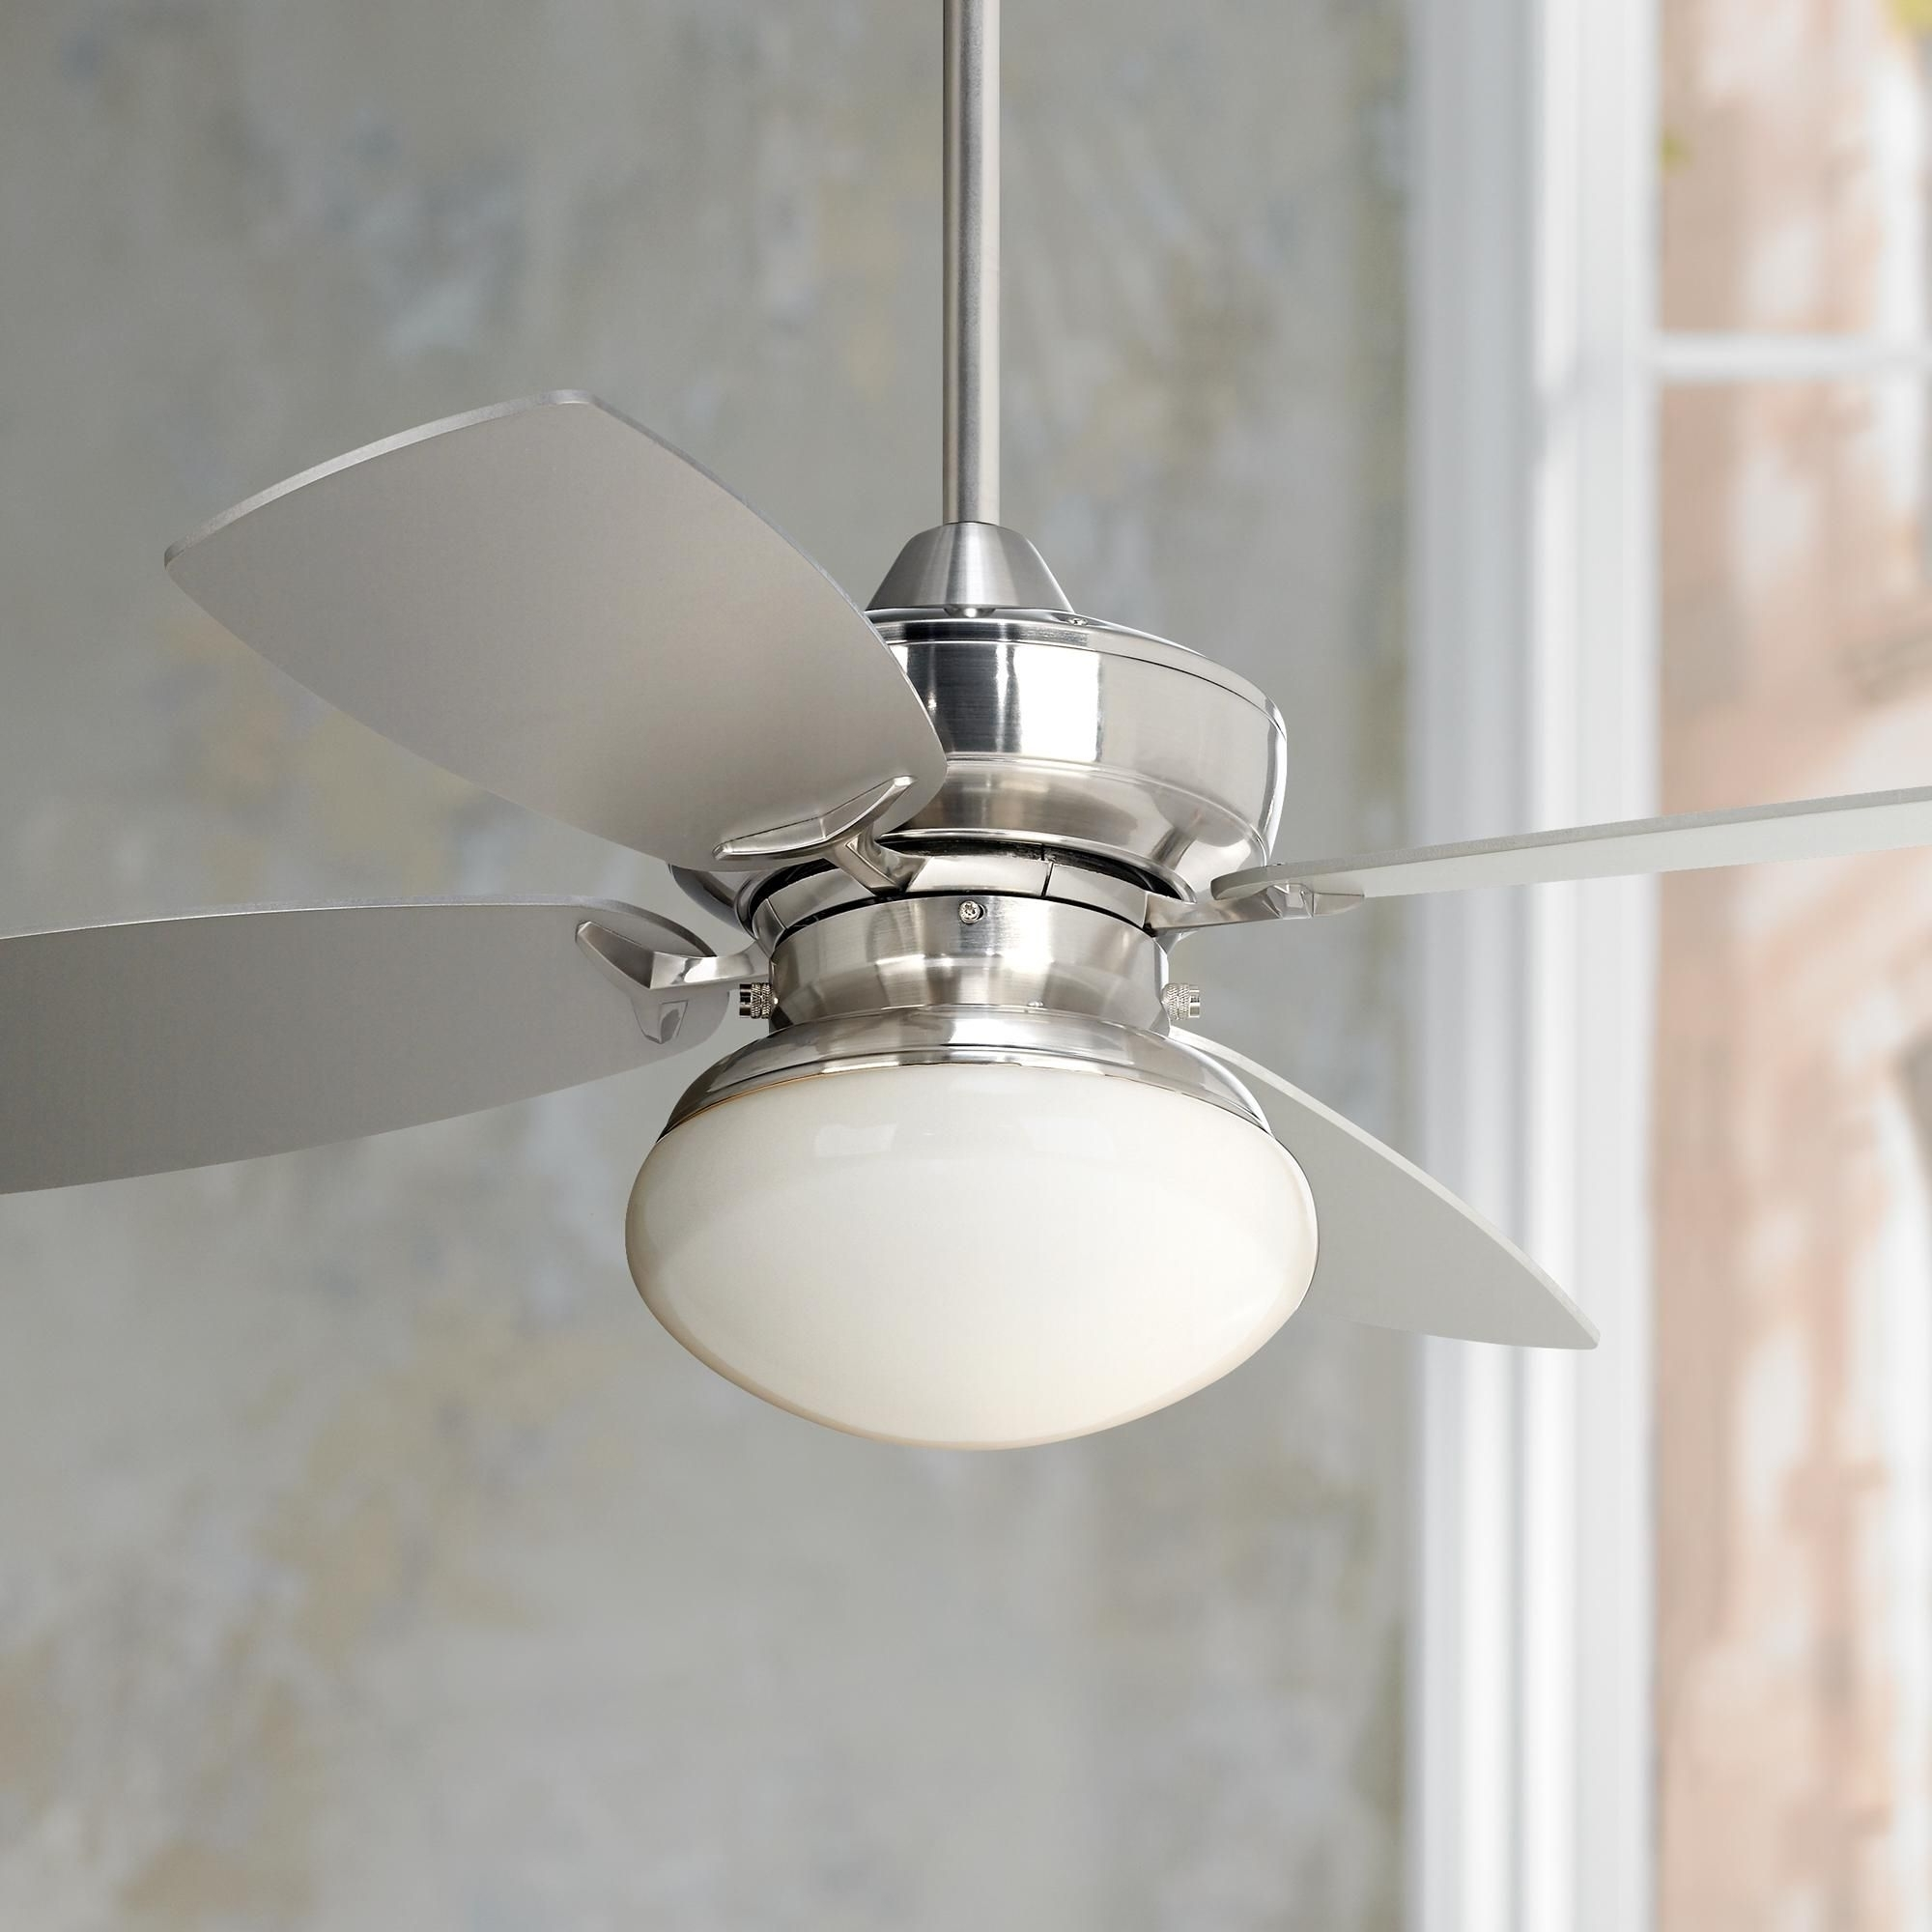 "Casa Vieja Outdoor Ceiling Fans With Regard To Recent 36"" Casa Vieja Outlook Brushed Nickel Ceiling Fan (View 19 of 20)"